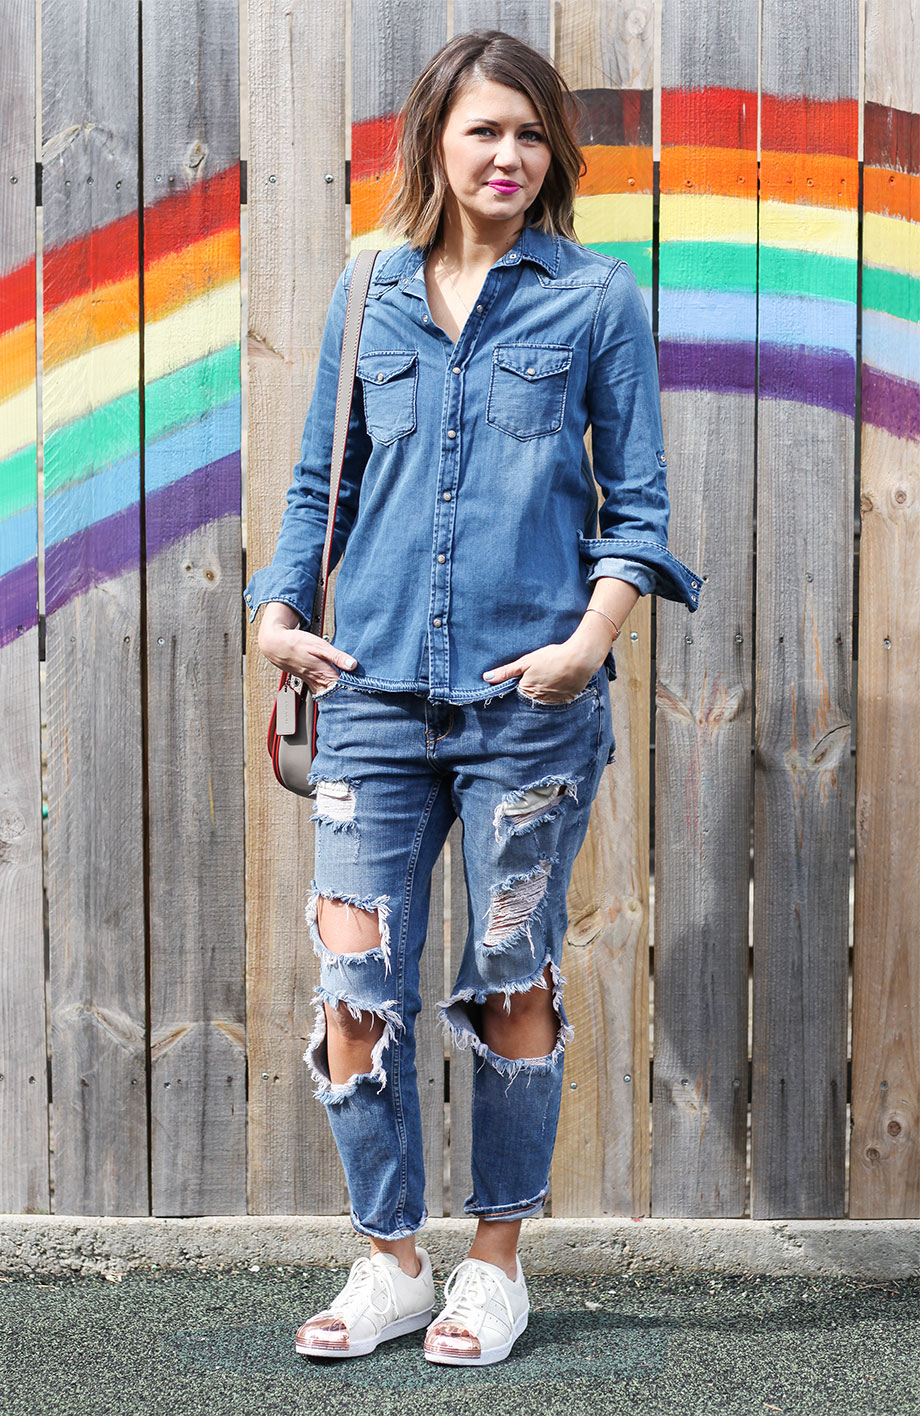 Corri McFadden wears denim and Adidas sneakers on Glitter and Bubbles.